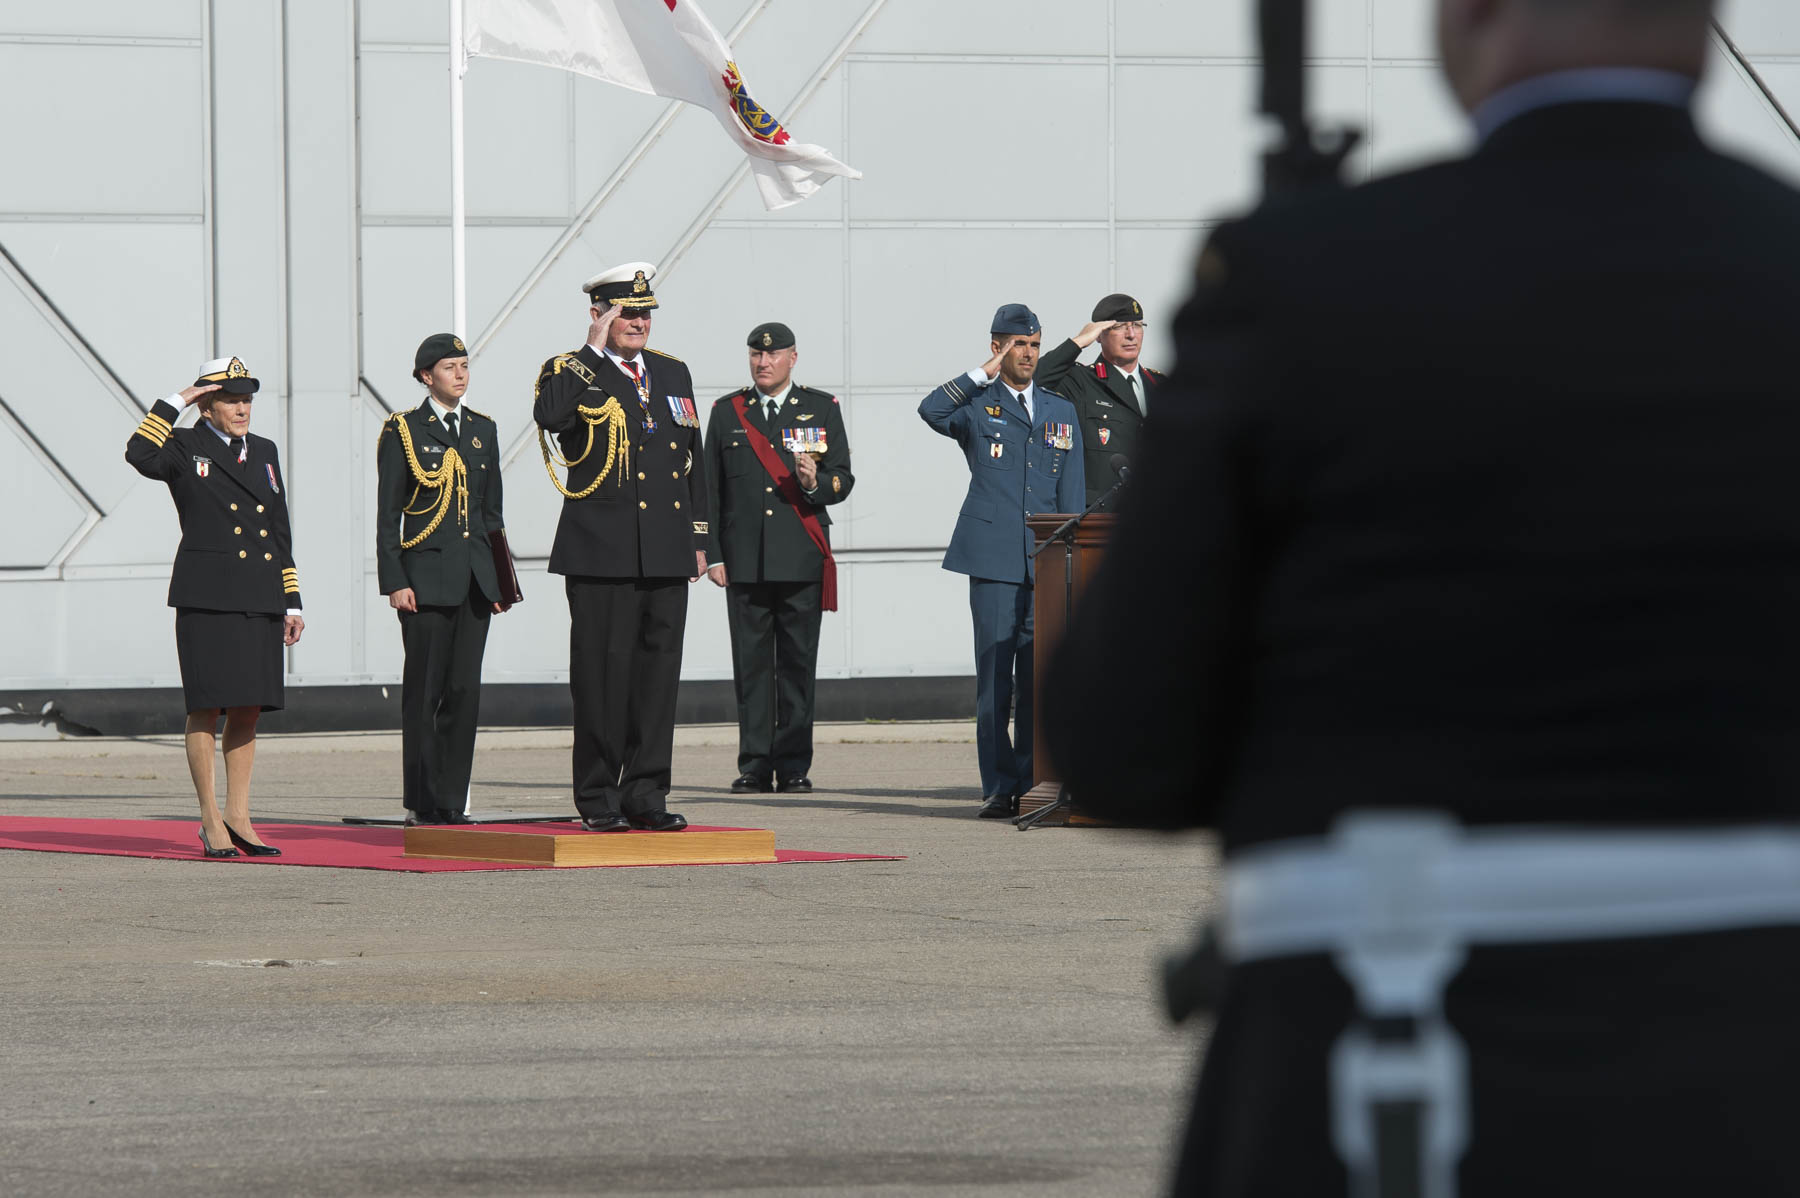 On September 27, 2017, the Canadian Armed Forces community bid farewell to Their Excellencies the Right Honourable David Johnston, Governor General and Commander-in-Chief of Canada, and Mrs. Sharon Johnston, during a ceremony at the Canada Aviation and Space Museum.